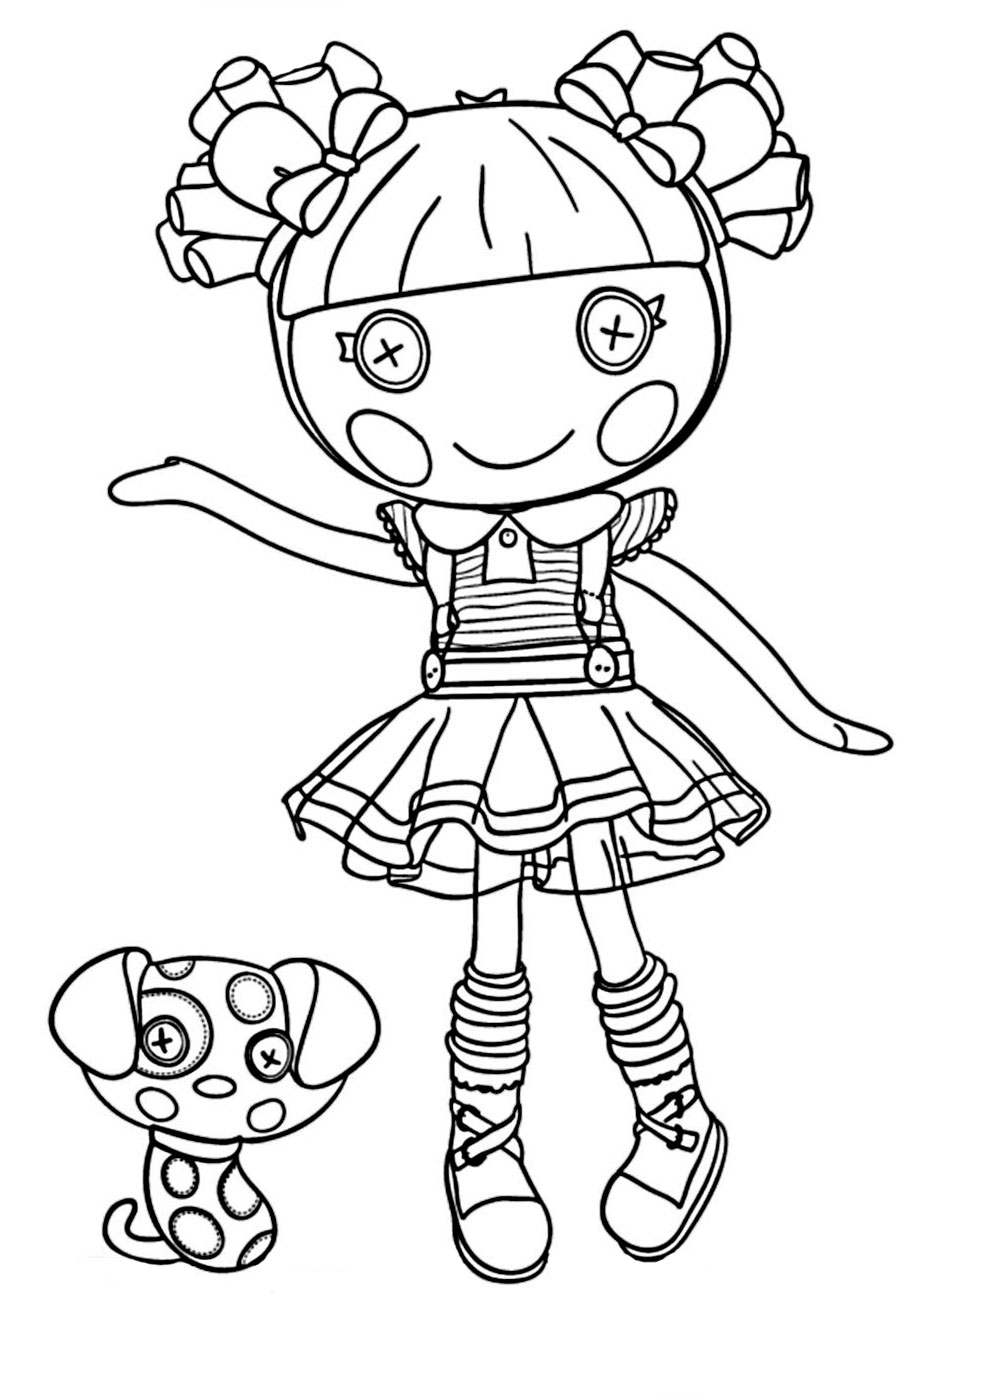 printable coloring sheets for girls girl coloring pages 3 coloring pages to print printable sheets for girls coloring